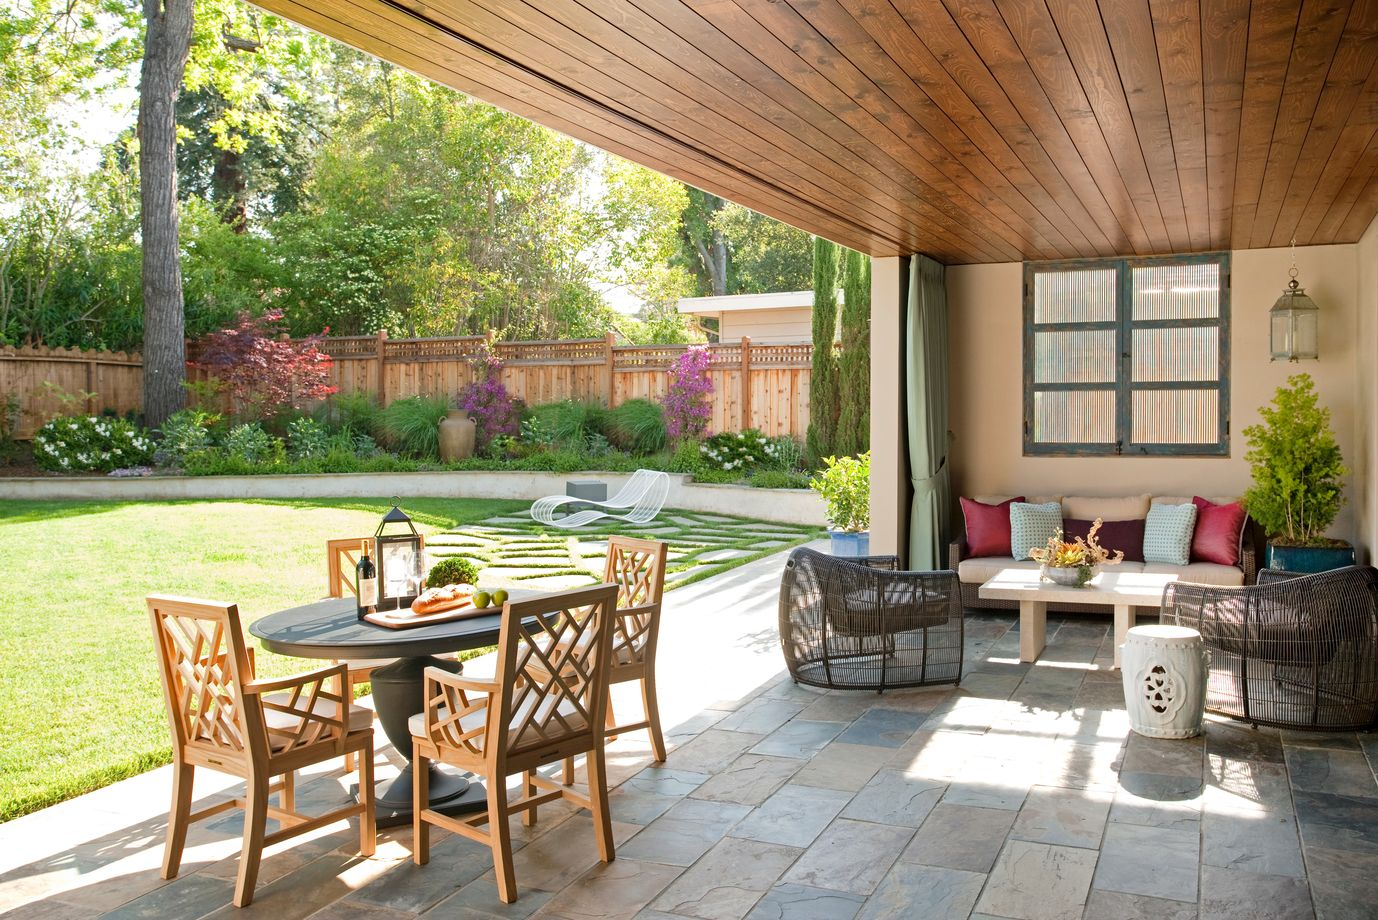 Outdoor Living Designs 6 Design Ideas To Perk Up Your Outdoor Living Space With Color